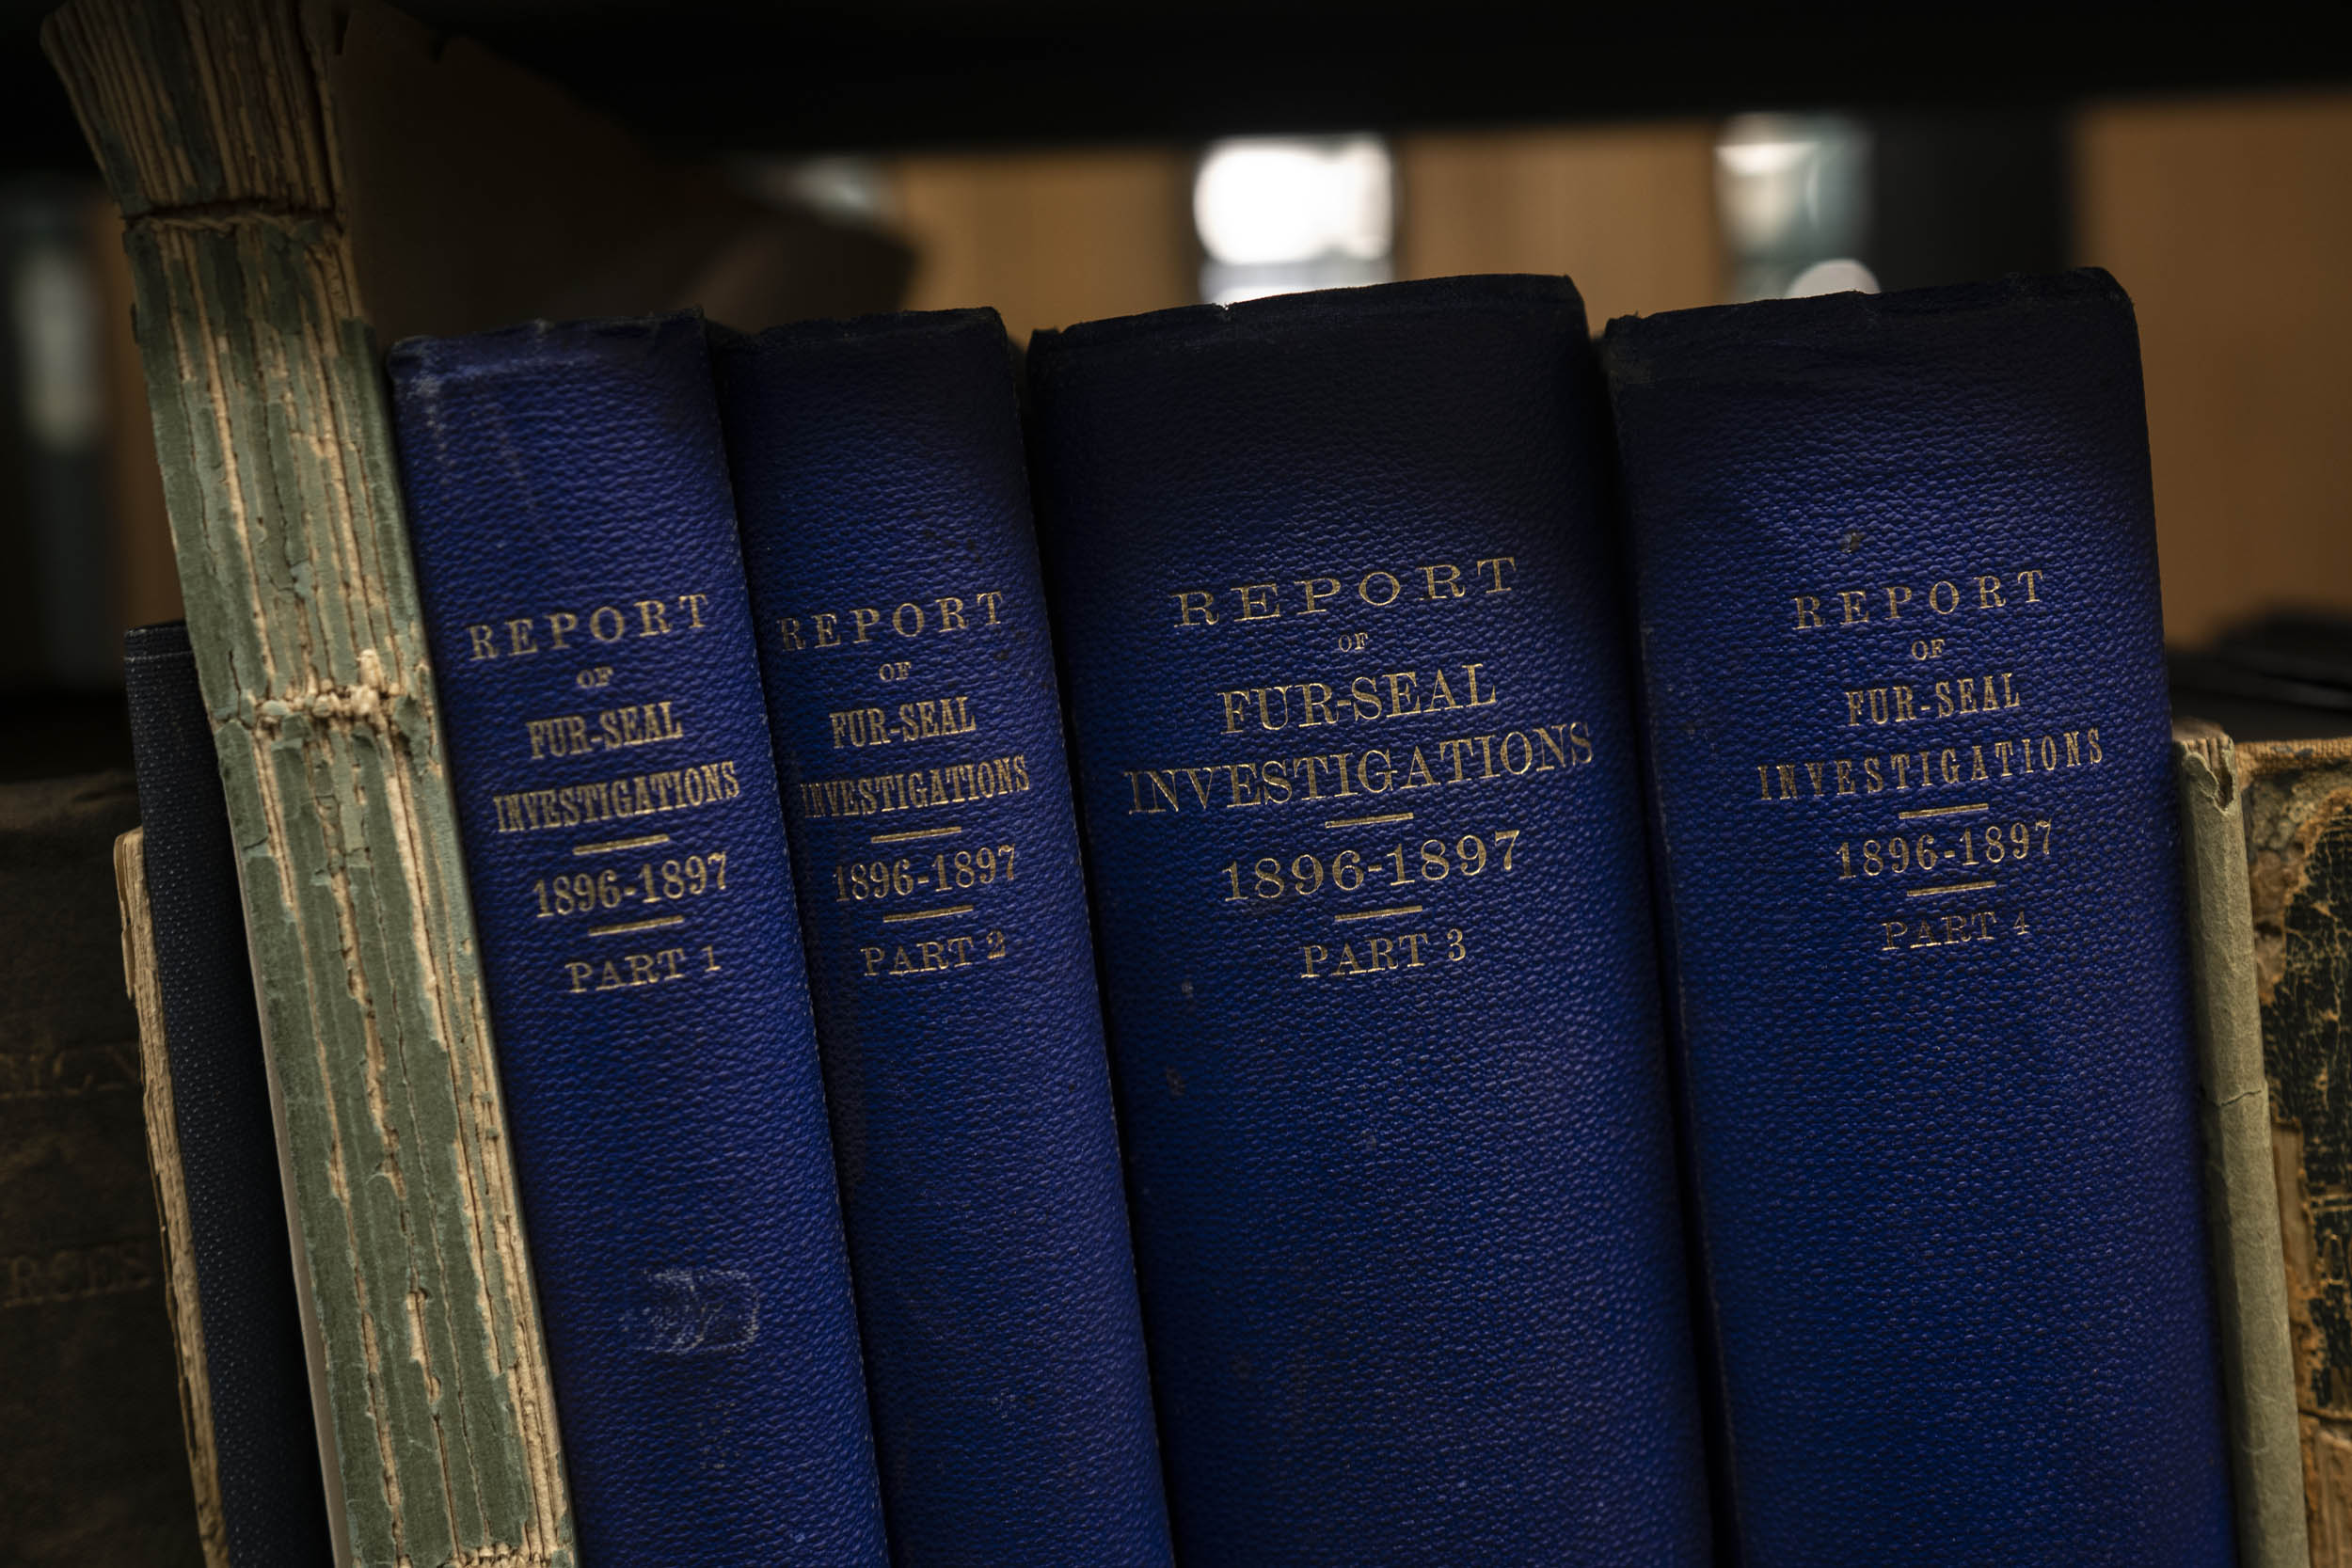 Books are being relocated either to Clemons Library or the Ivy Stacks, where these 19th-century reports will go.